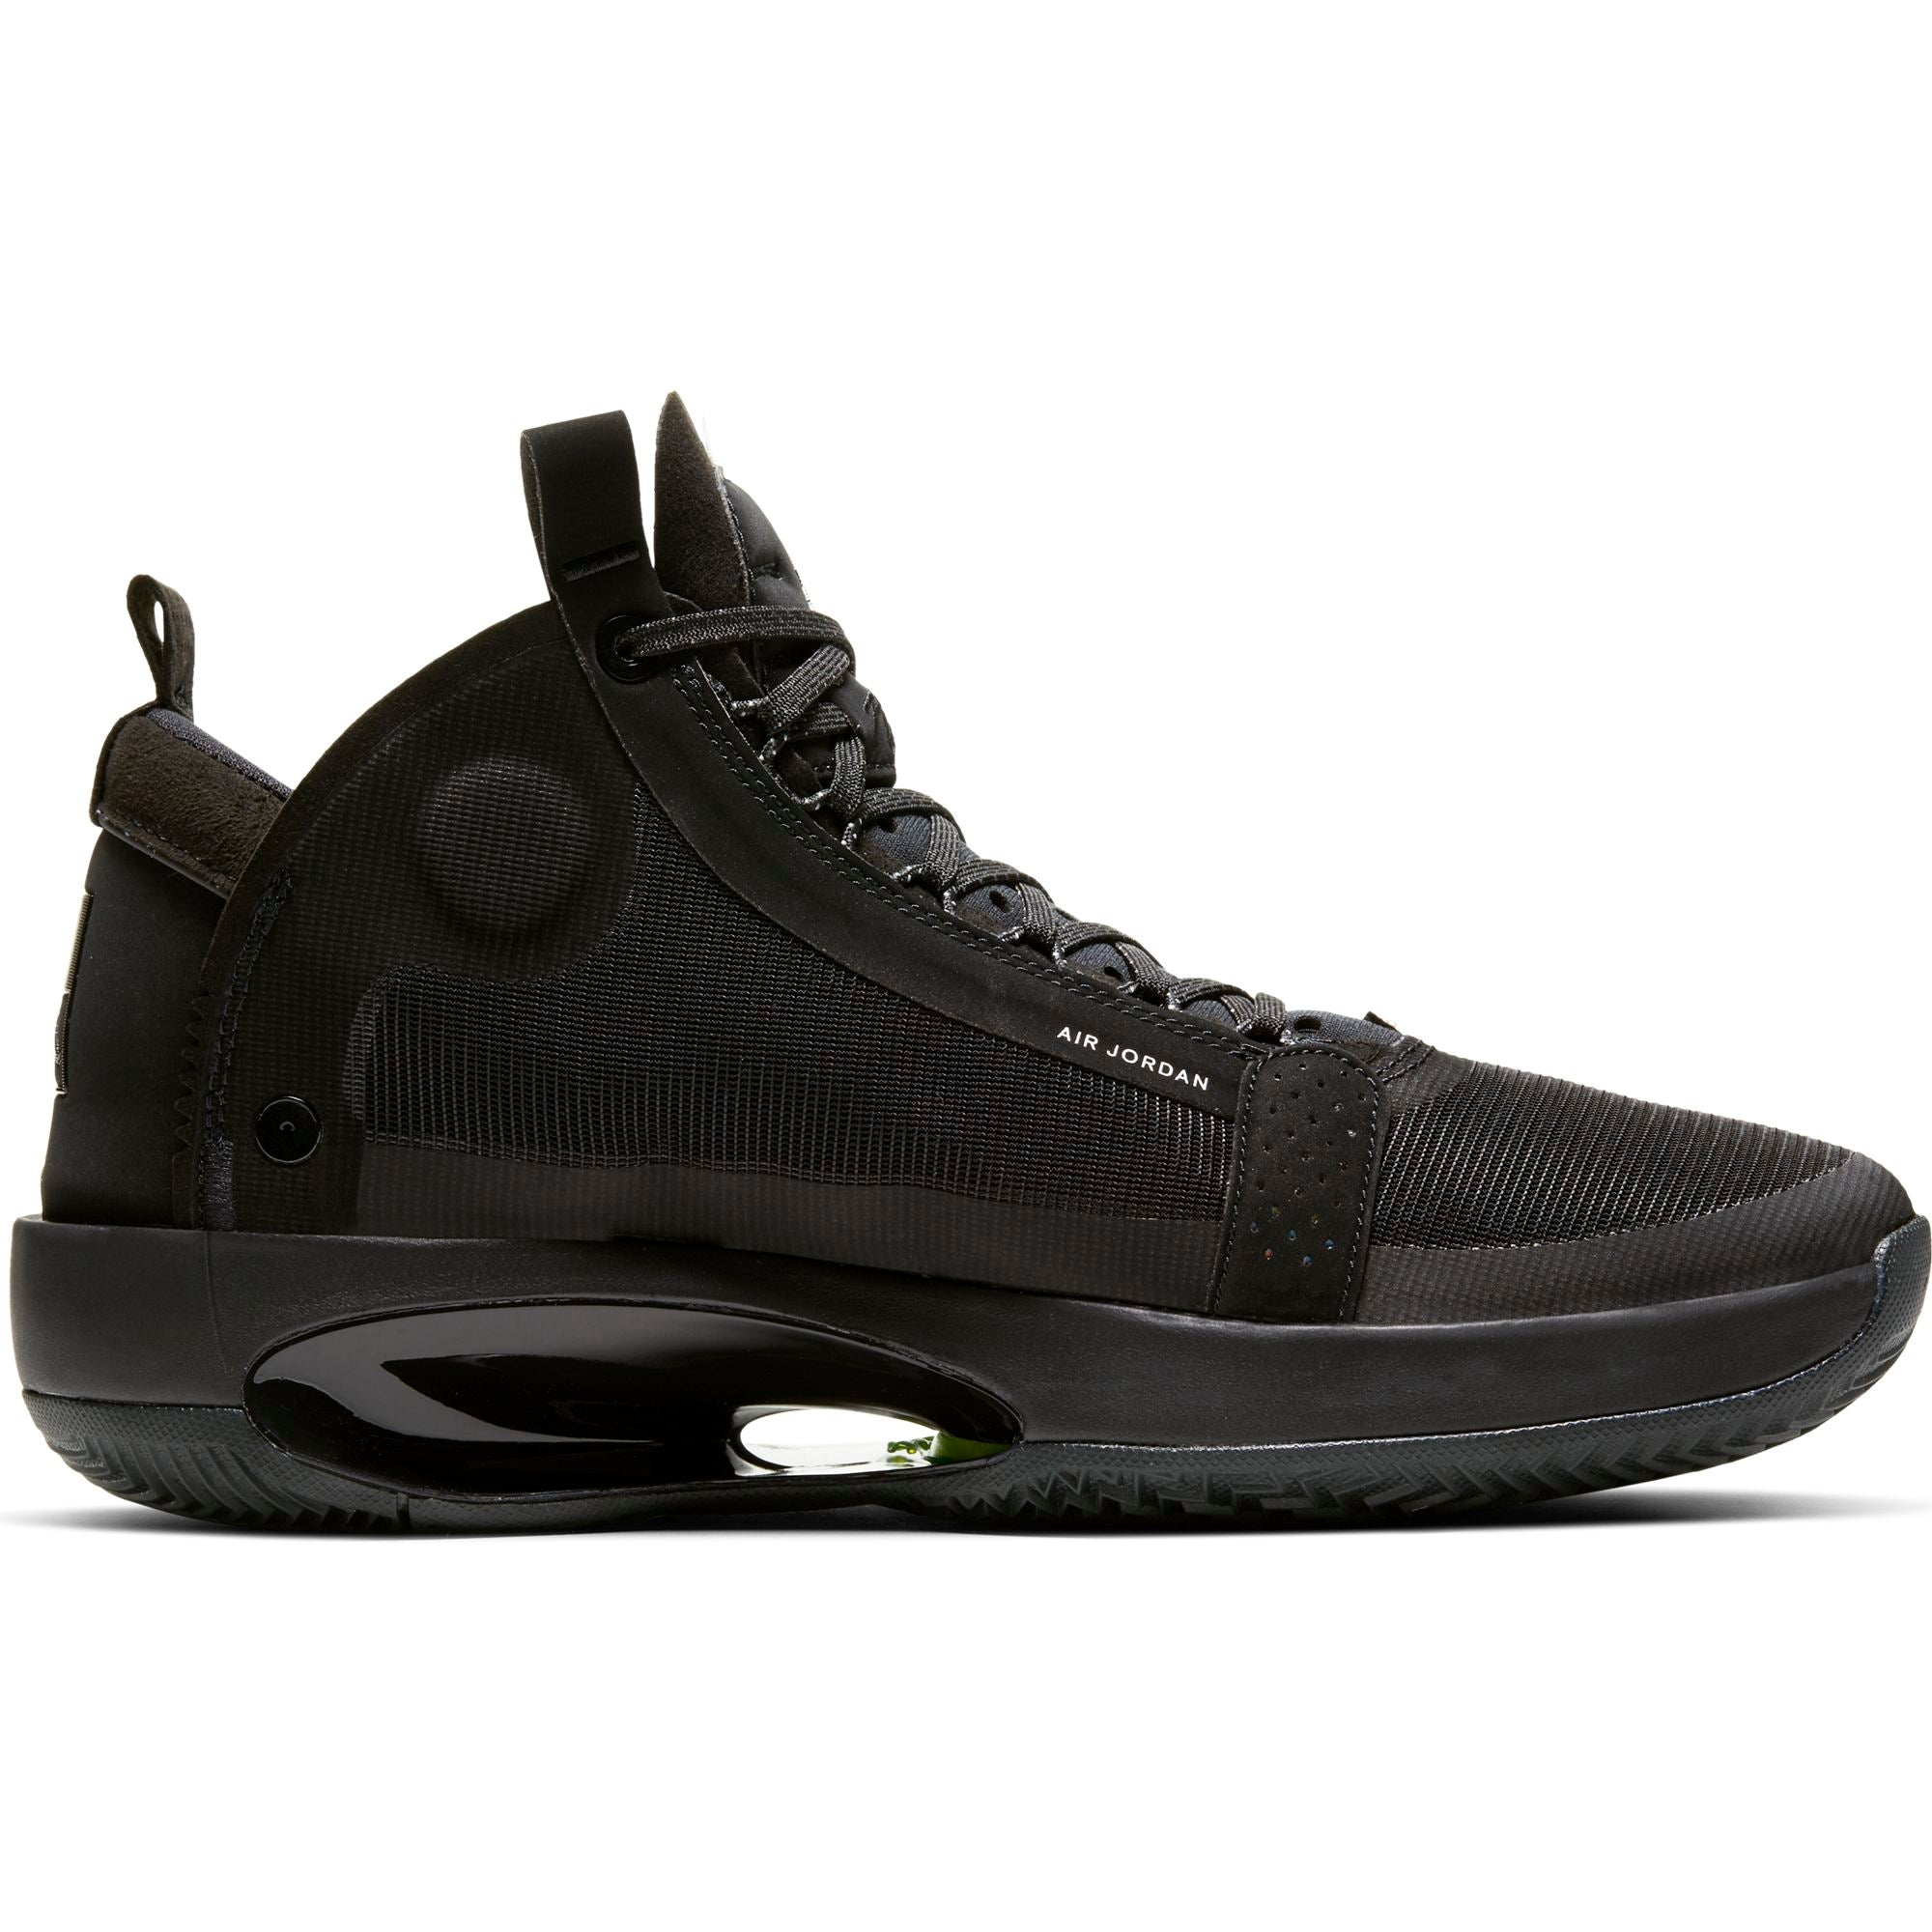 Nike Jordan Air XXXIV Basketball Boot/shoe - Black/Dark Smoke Grey/Electric Green